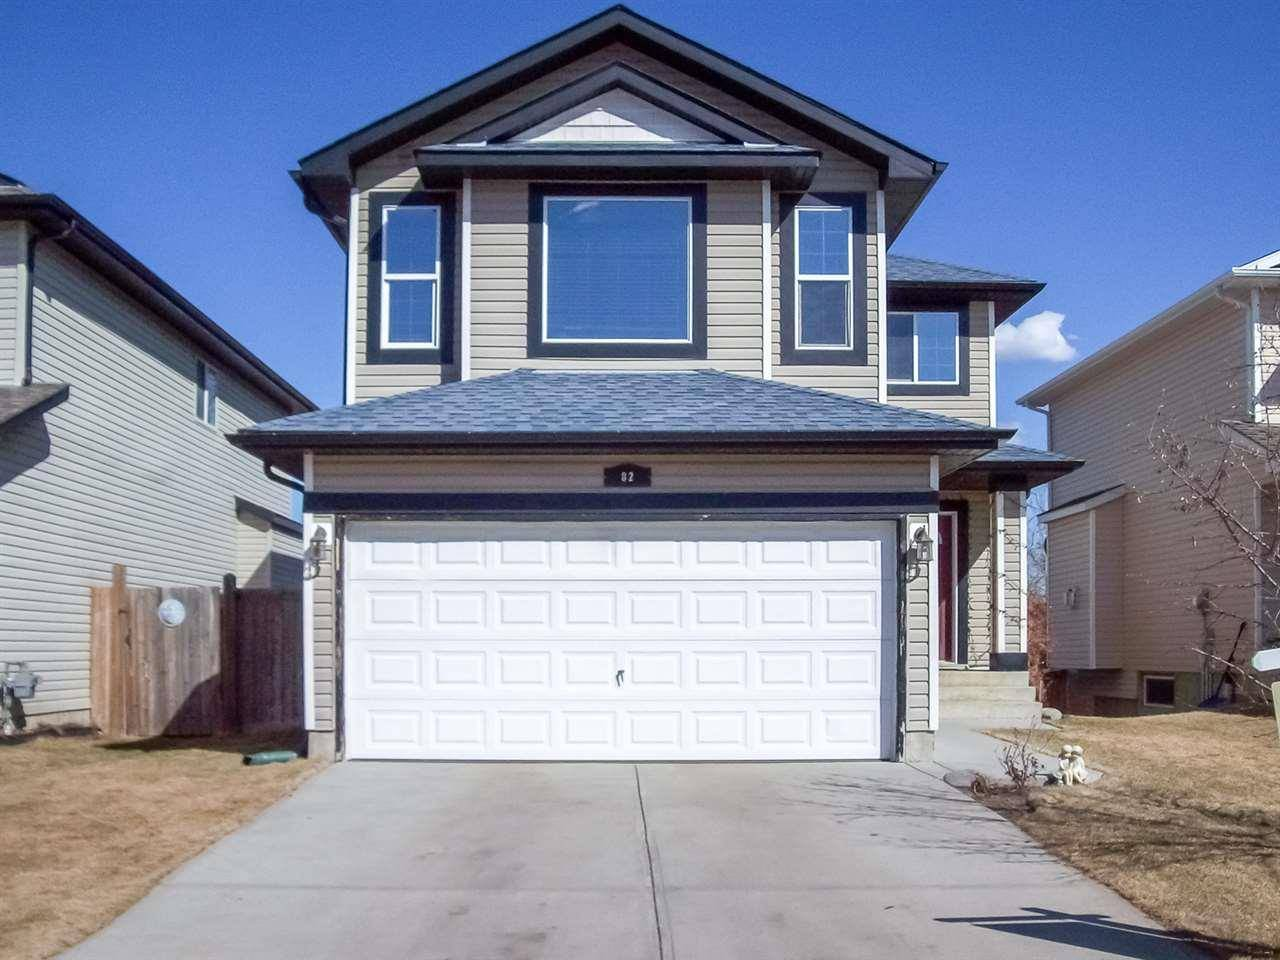 House for sale at 82 Greystone Cres Spruce Grove Alberta - MLS: E4191999